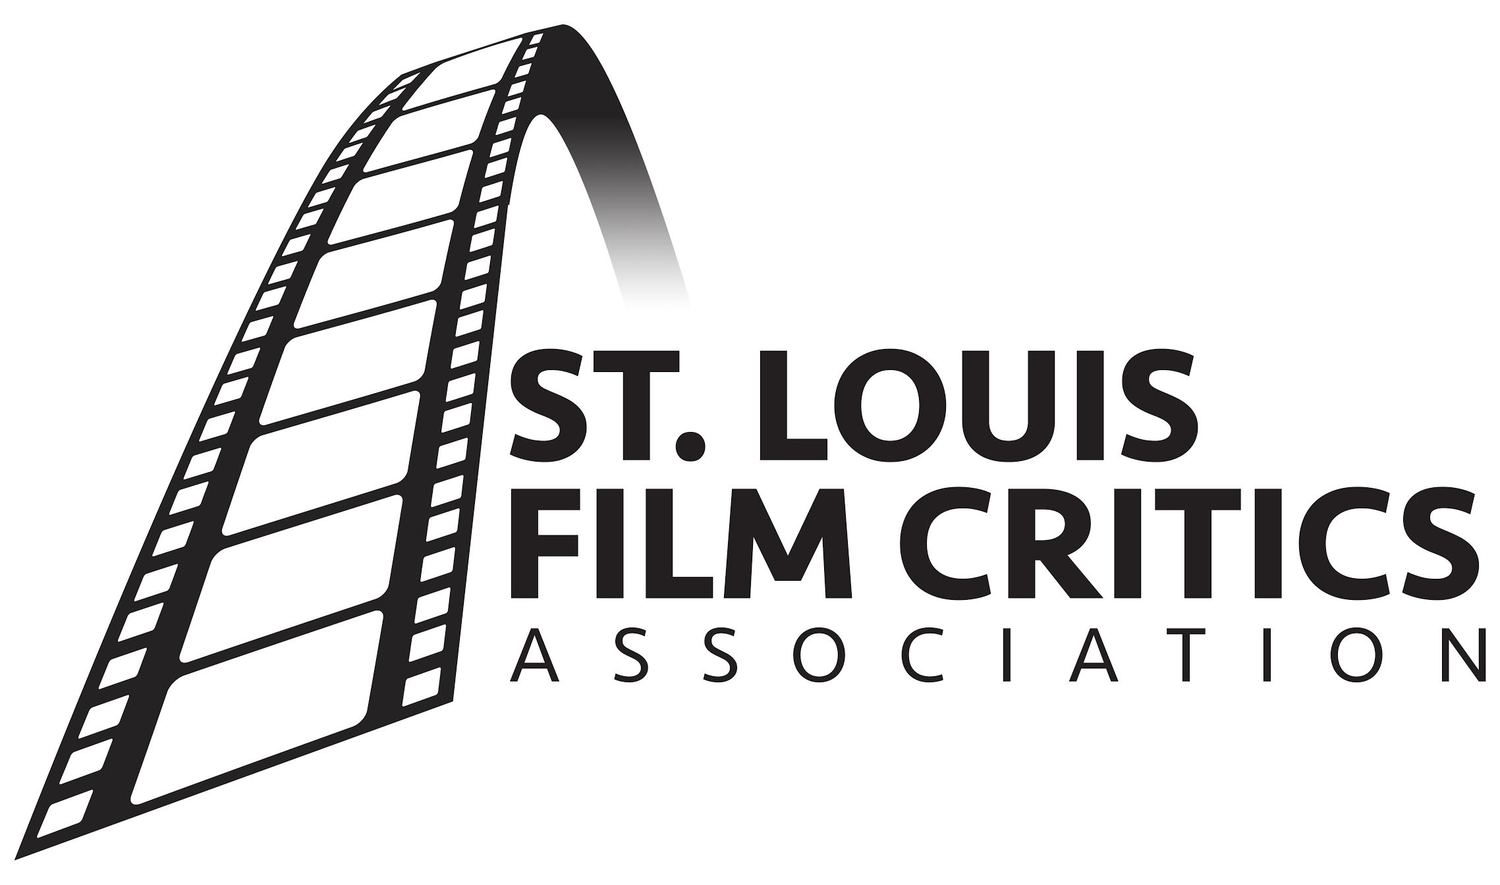 St. Louis Film Critics Association